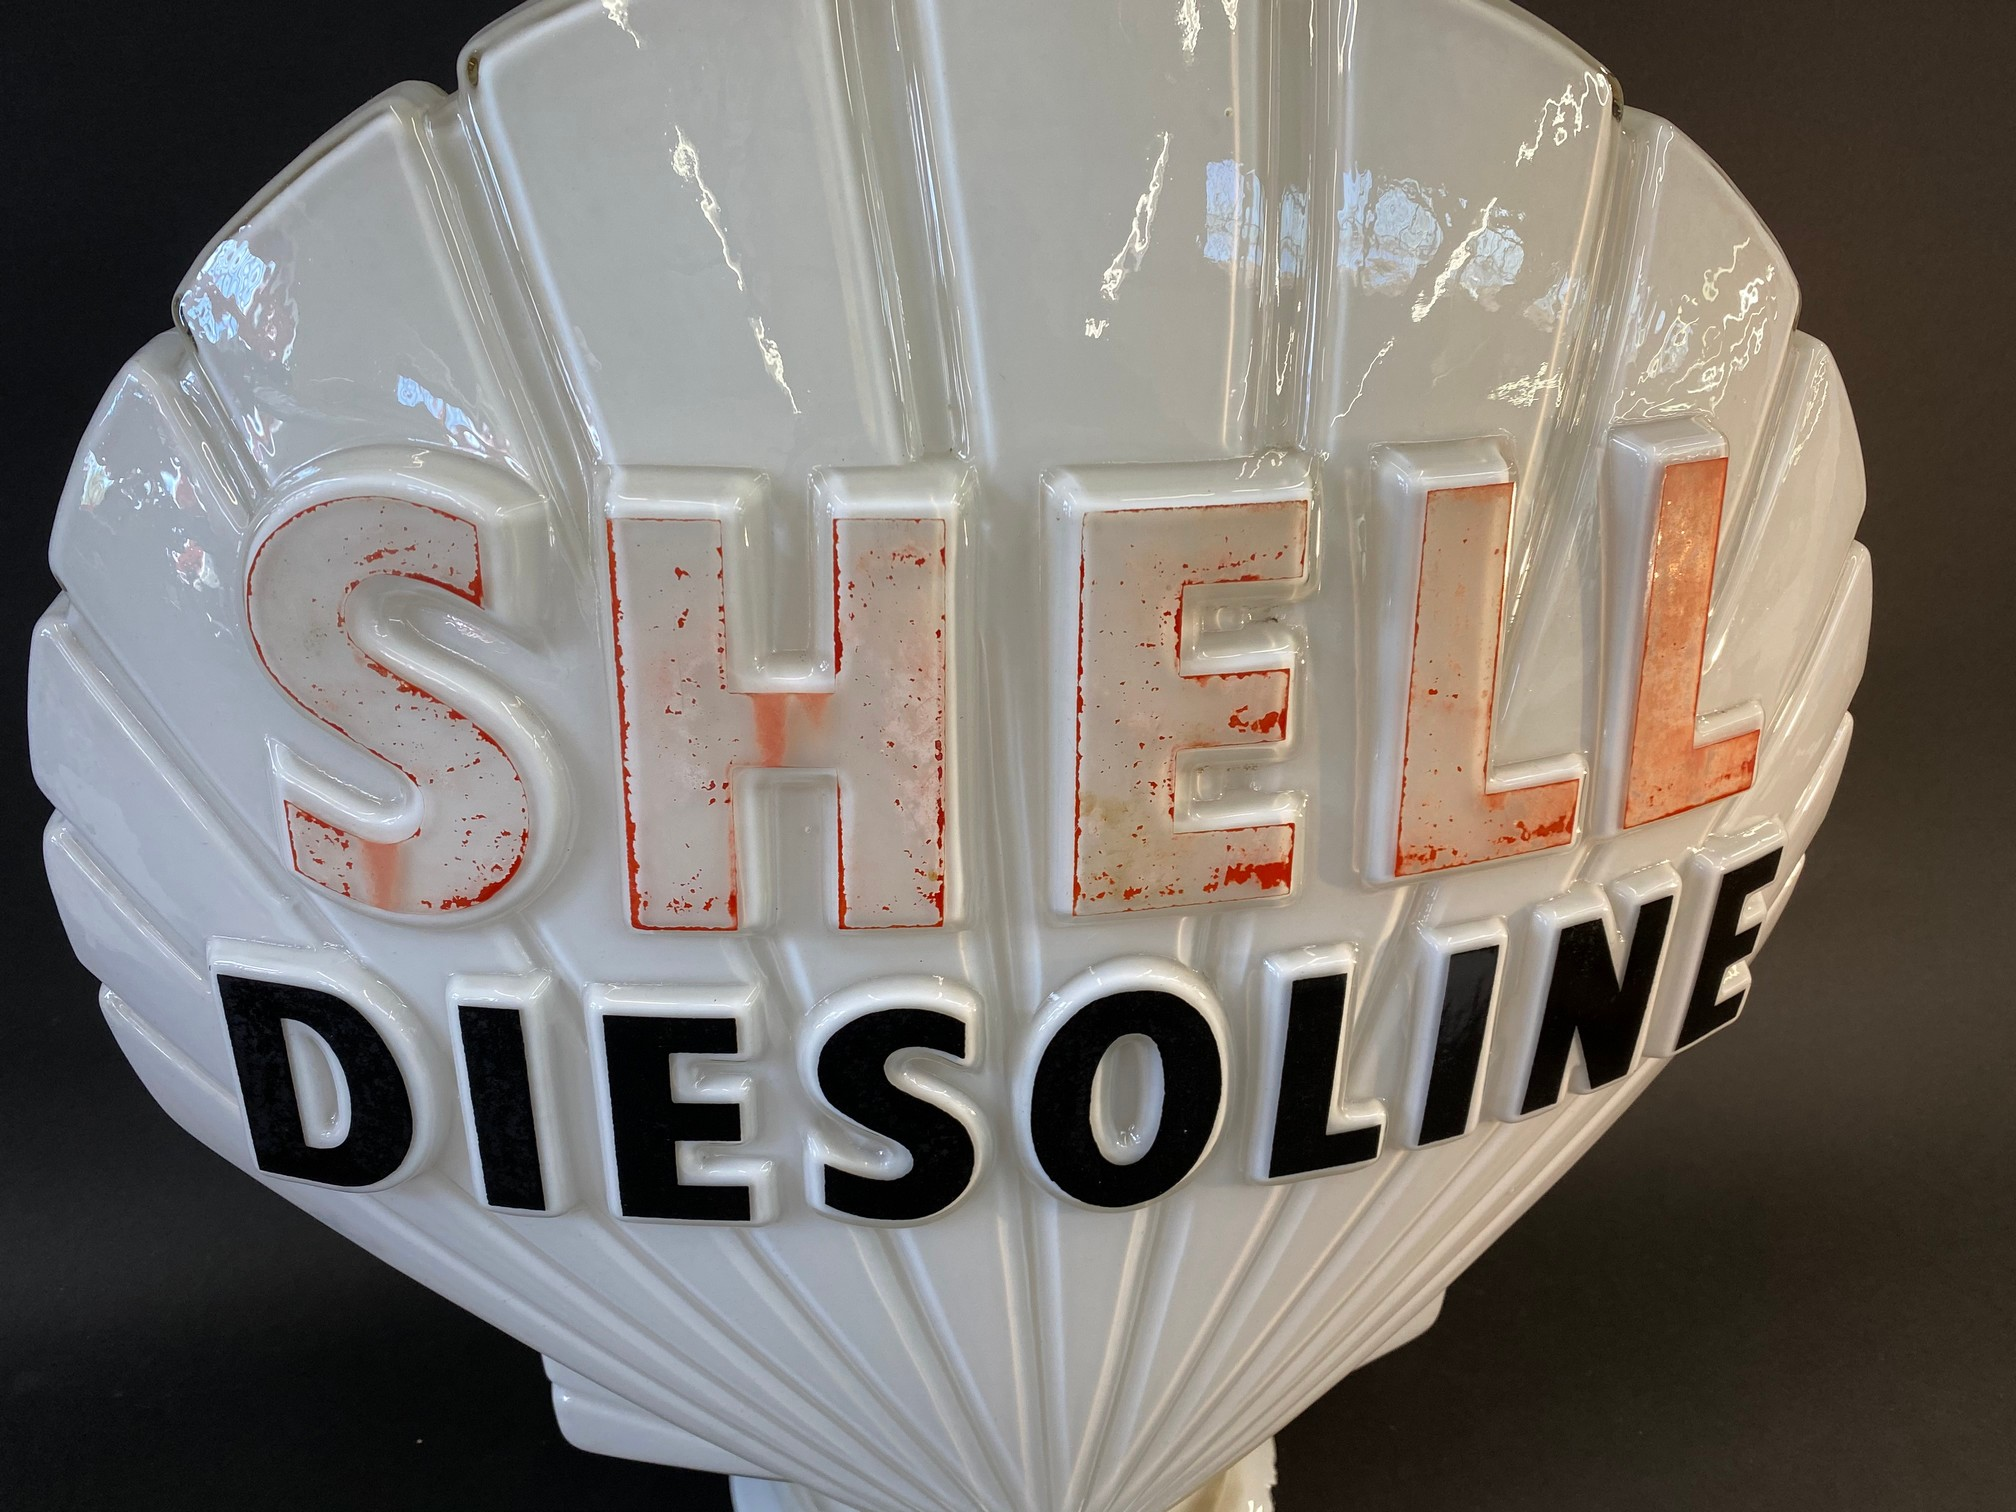 A Shell Diesoline glass petrol pump globe by Hailware, faint stamps underneath, minor nibbles to - Image 3 of 4